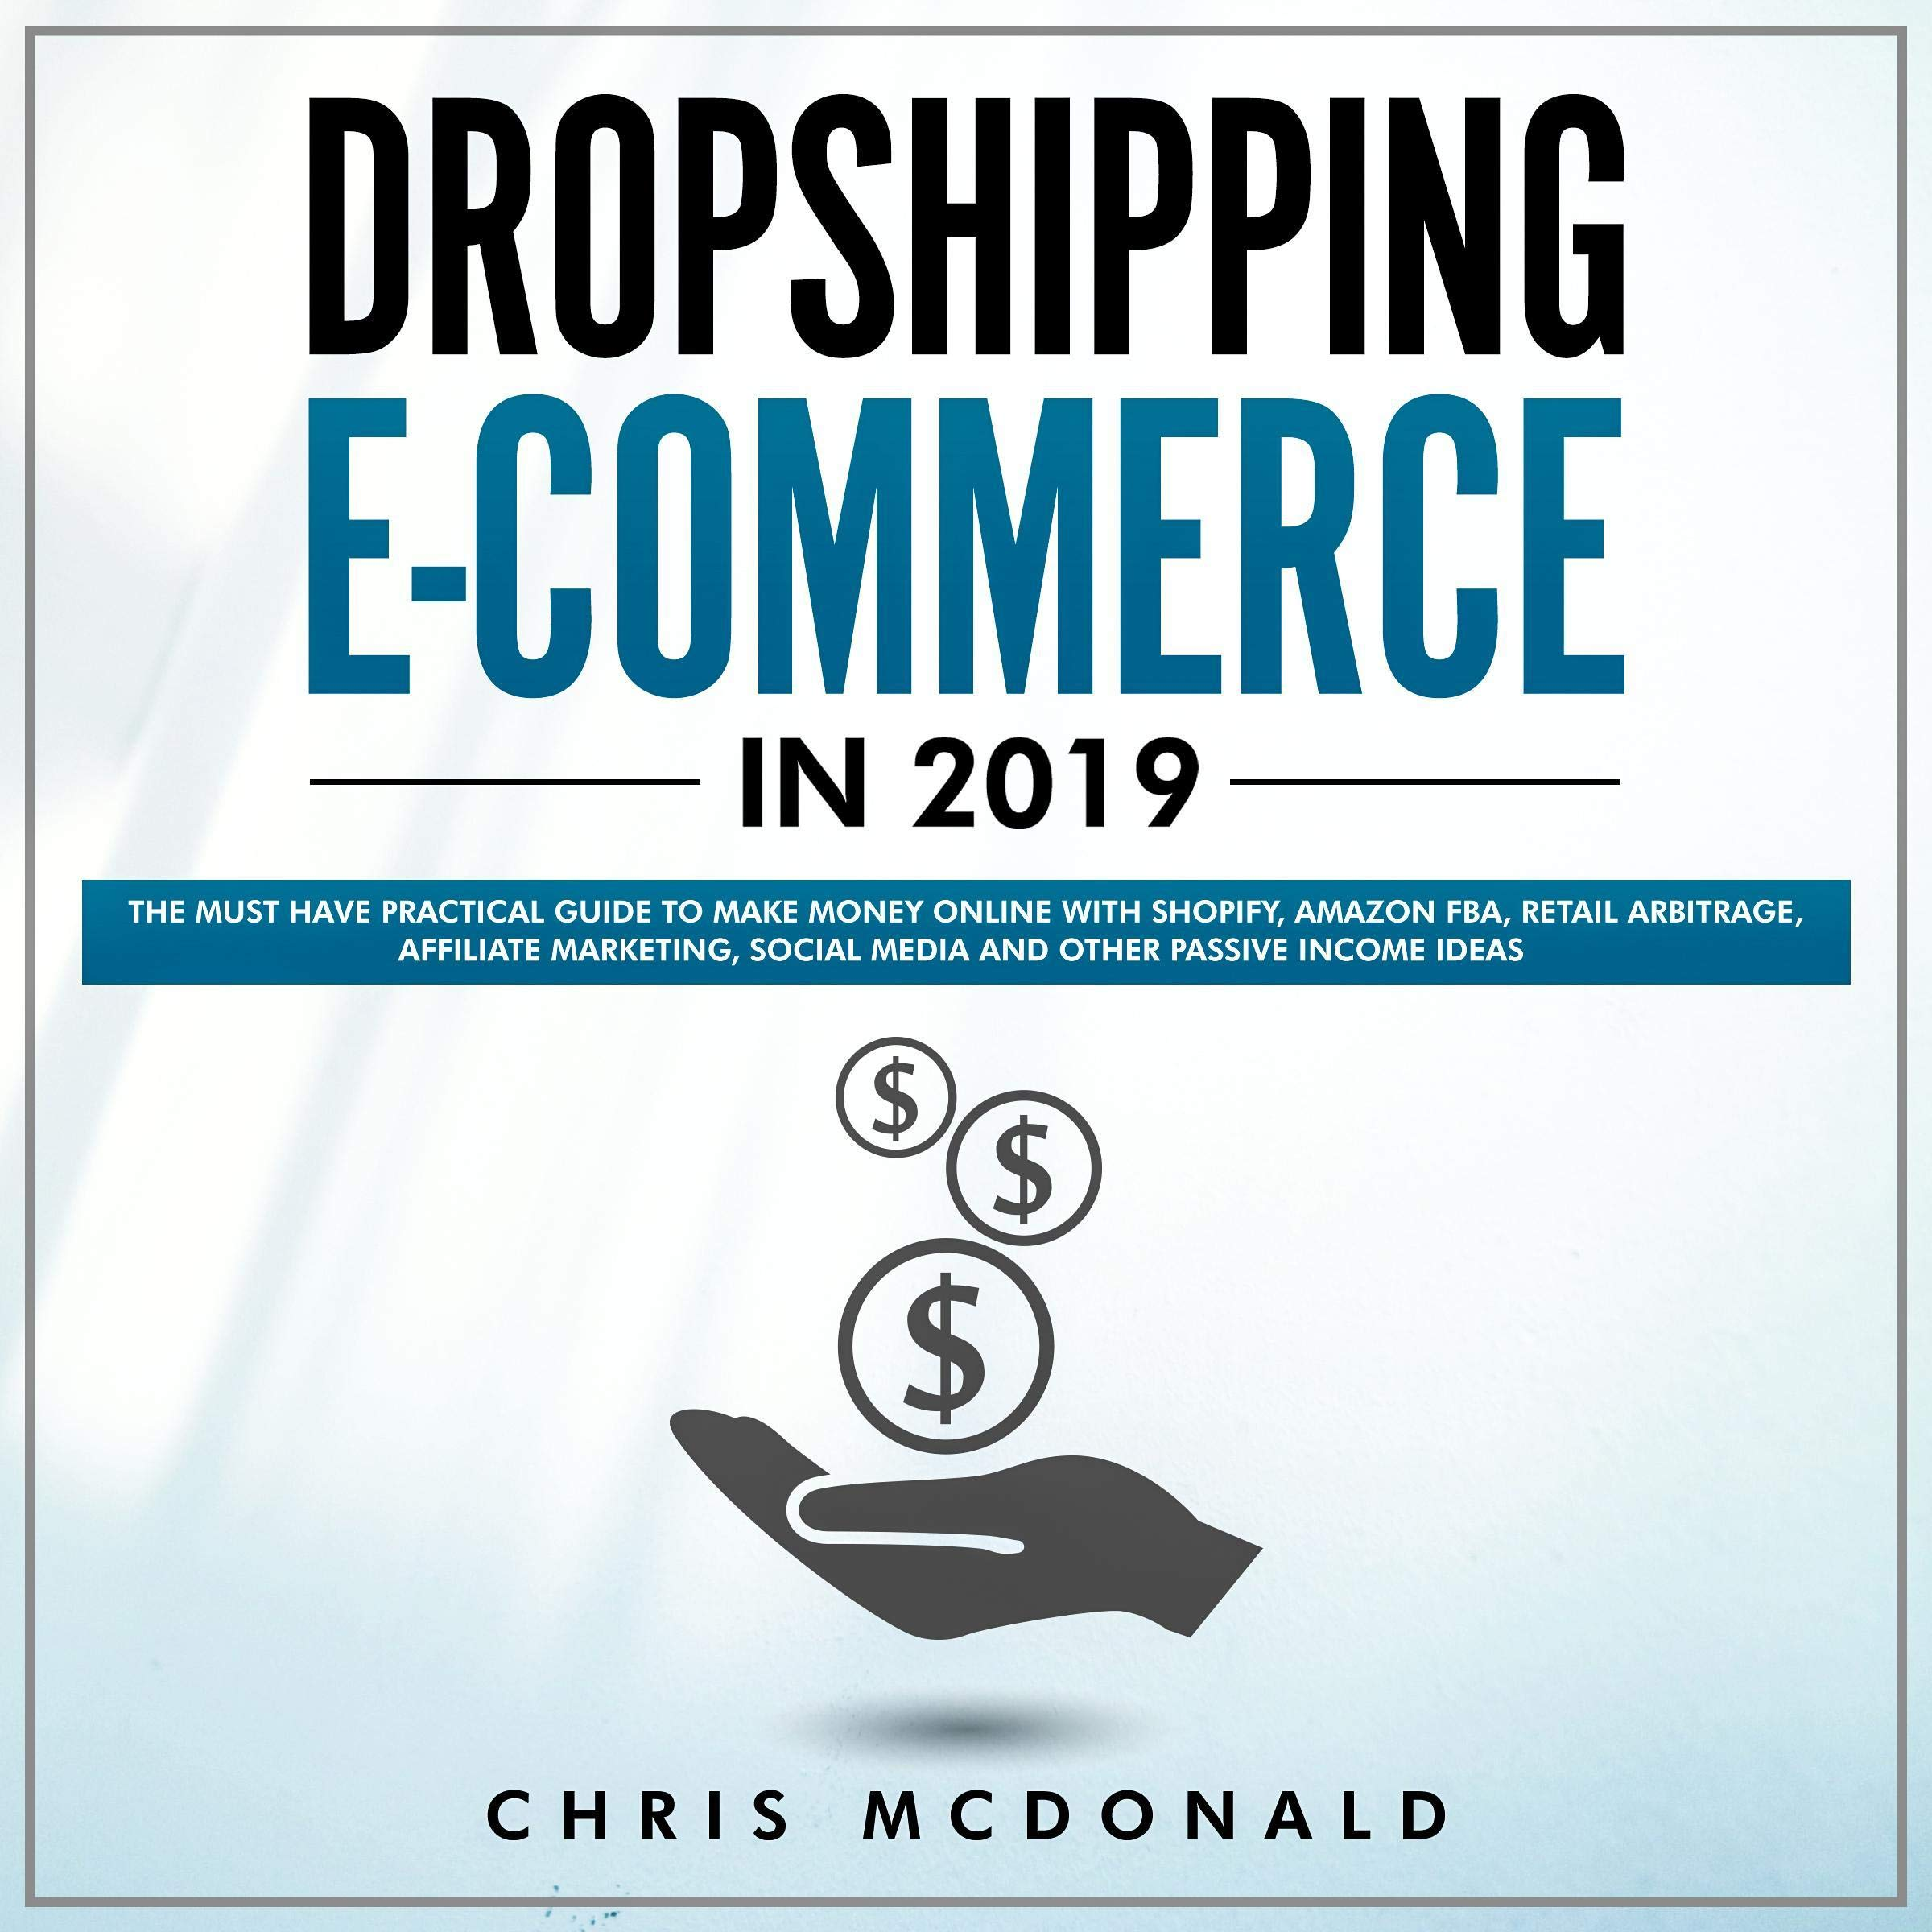 Dropshipping E Commerce In 2019  The Must Have Practical Guide To Make Money Online With Shopify Amazon FBA Retail Arbitrage Affiliate Marketing Social Media And Other Passive Income Ideas